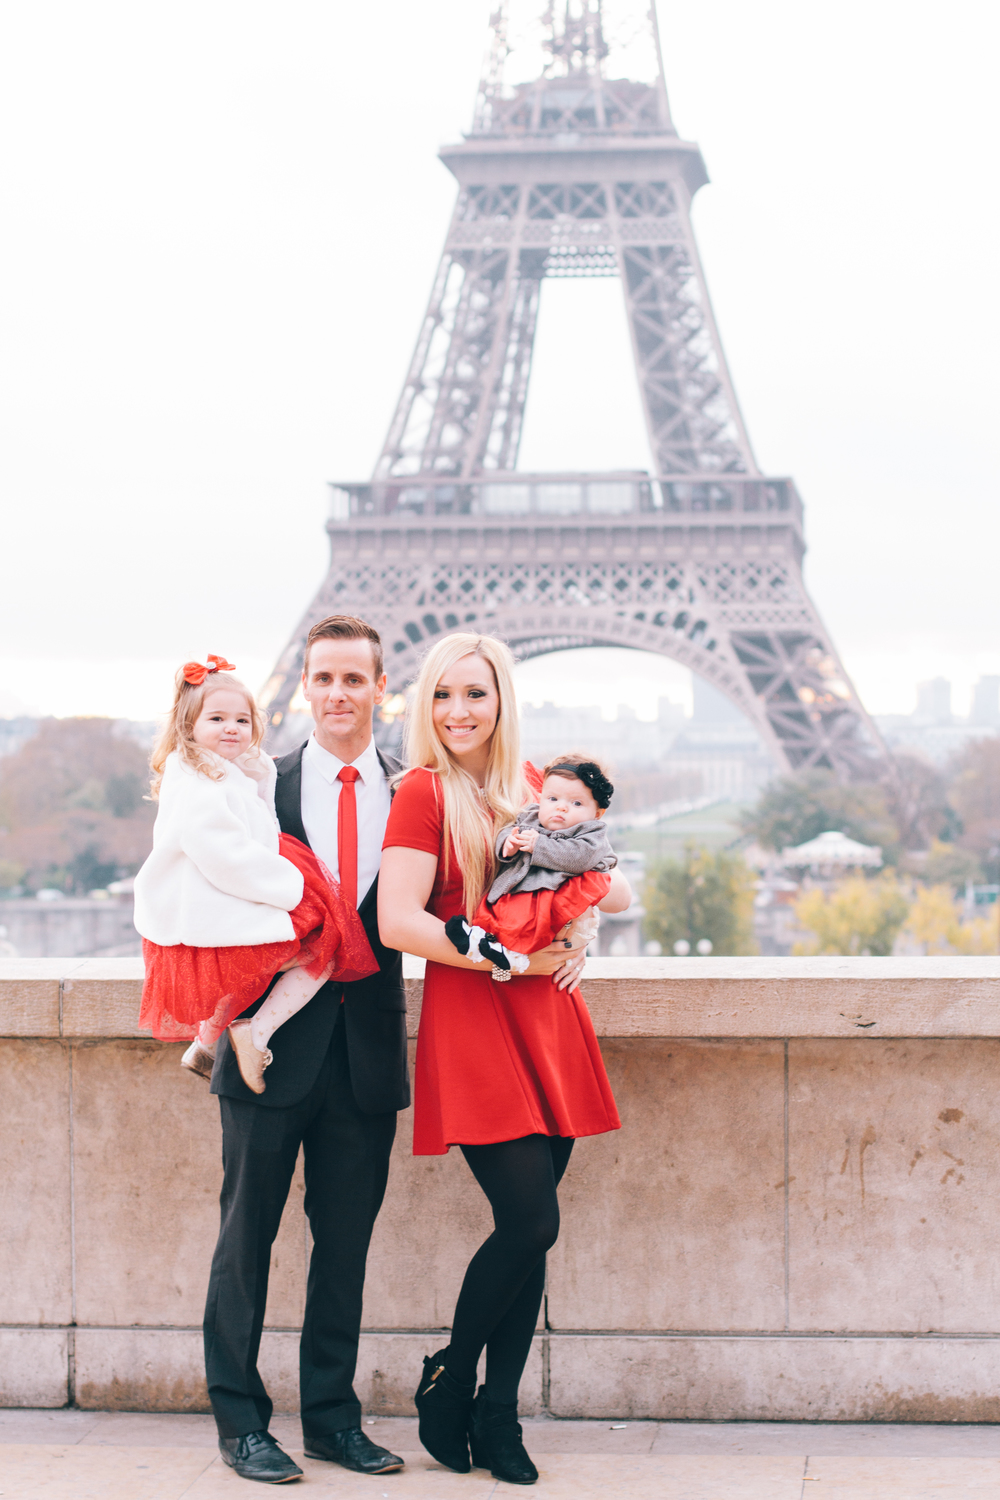 FLYTOGRAPHER | Paris Vacation Photographer - 5